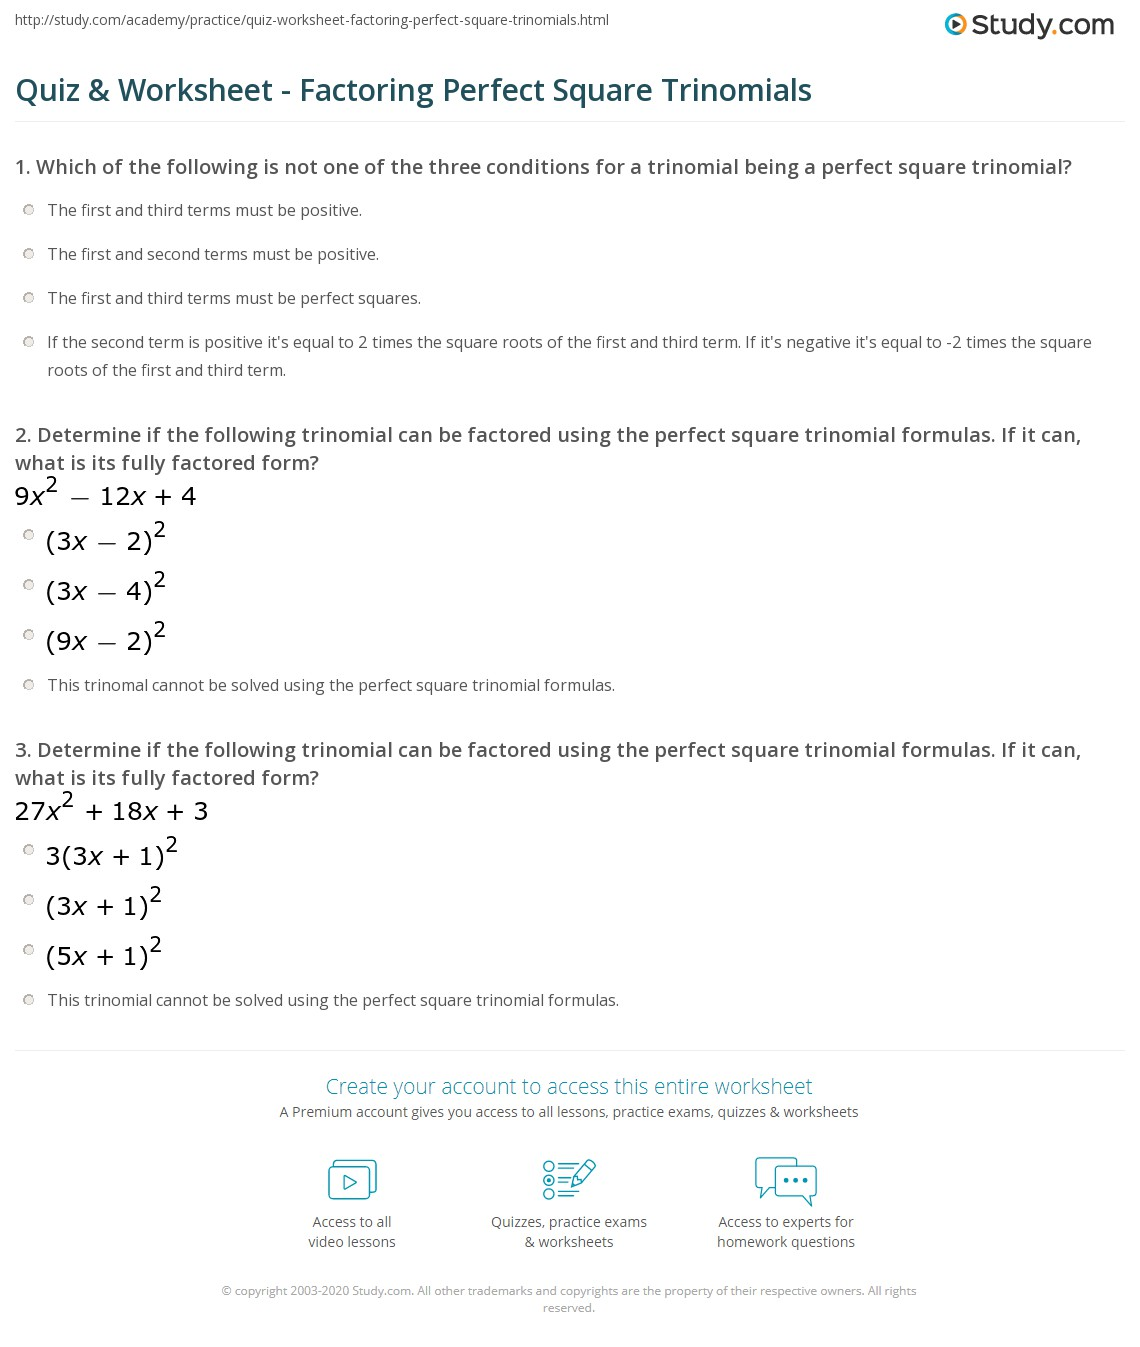 Alge Worksheets   Free    monCoreSheets further Perfect Square Trinomial Worksheet   YouTube in addition Factoring Perfect Square Trinomials Worksheet further  as well  moreover  additionally Factoring Quadratic Expressions with 'a' Coefficients up to 81  A together with Factoring Perfect Square Trinomials Practice Problems   Study furthermore Factoring by Grouping Polynomials Worksheets   Math Aids together with  together with factoring practice worksheet Project of factoring practice worksheet besides Trinomial Squares in addition Quiz   Worksheet   Factoring Perfect Square Trinomials   Study in addition Factoring X2 Bx C Worksheet Inspirational Factoring Perfect Square additionally  also Perfect square trinomial worksheet   Blog. on factoring perfect square trinomials worksheet